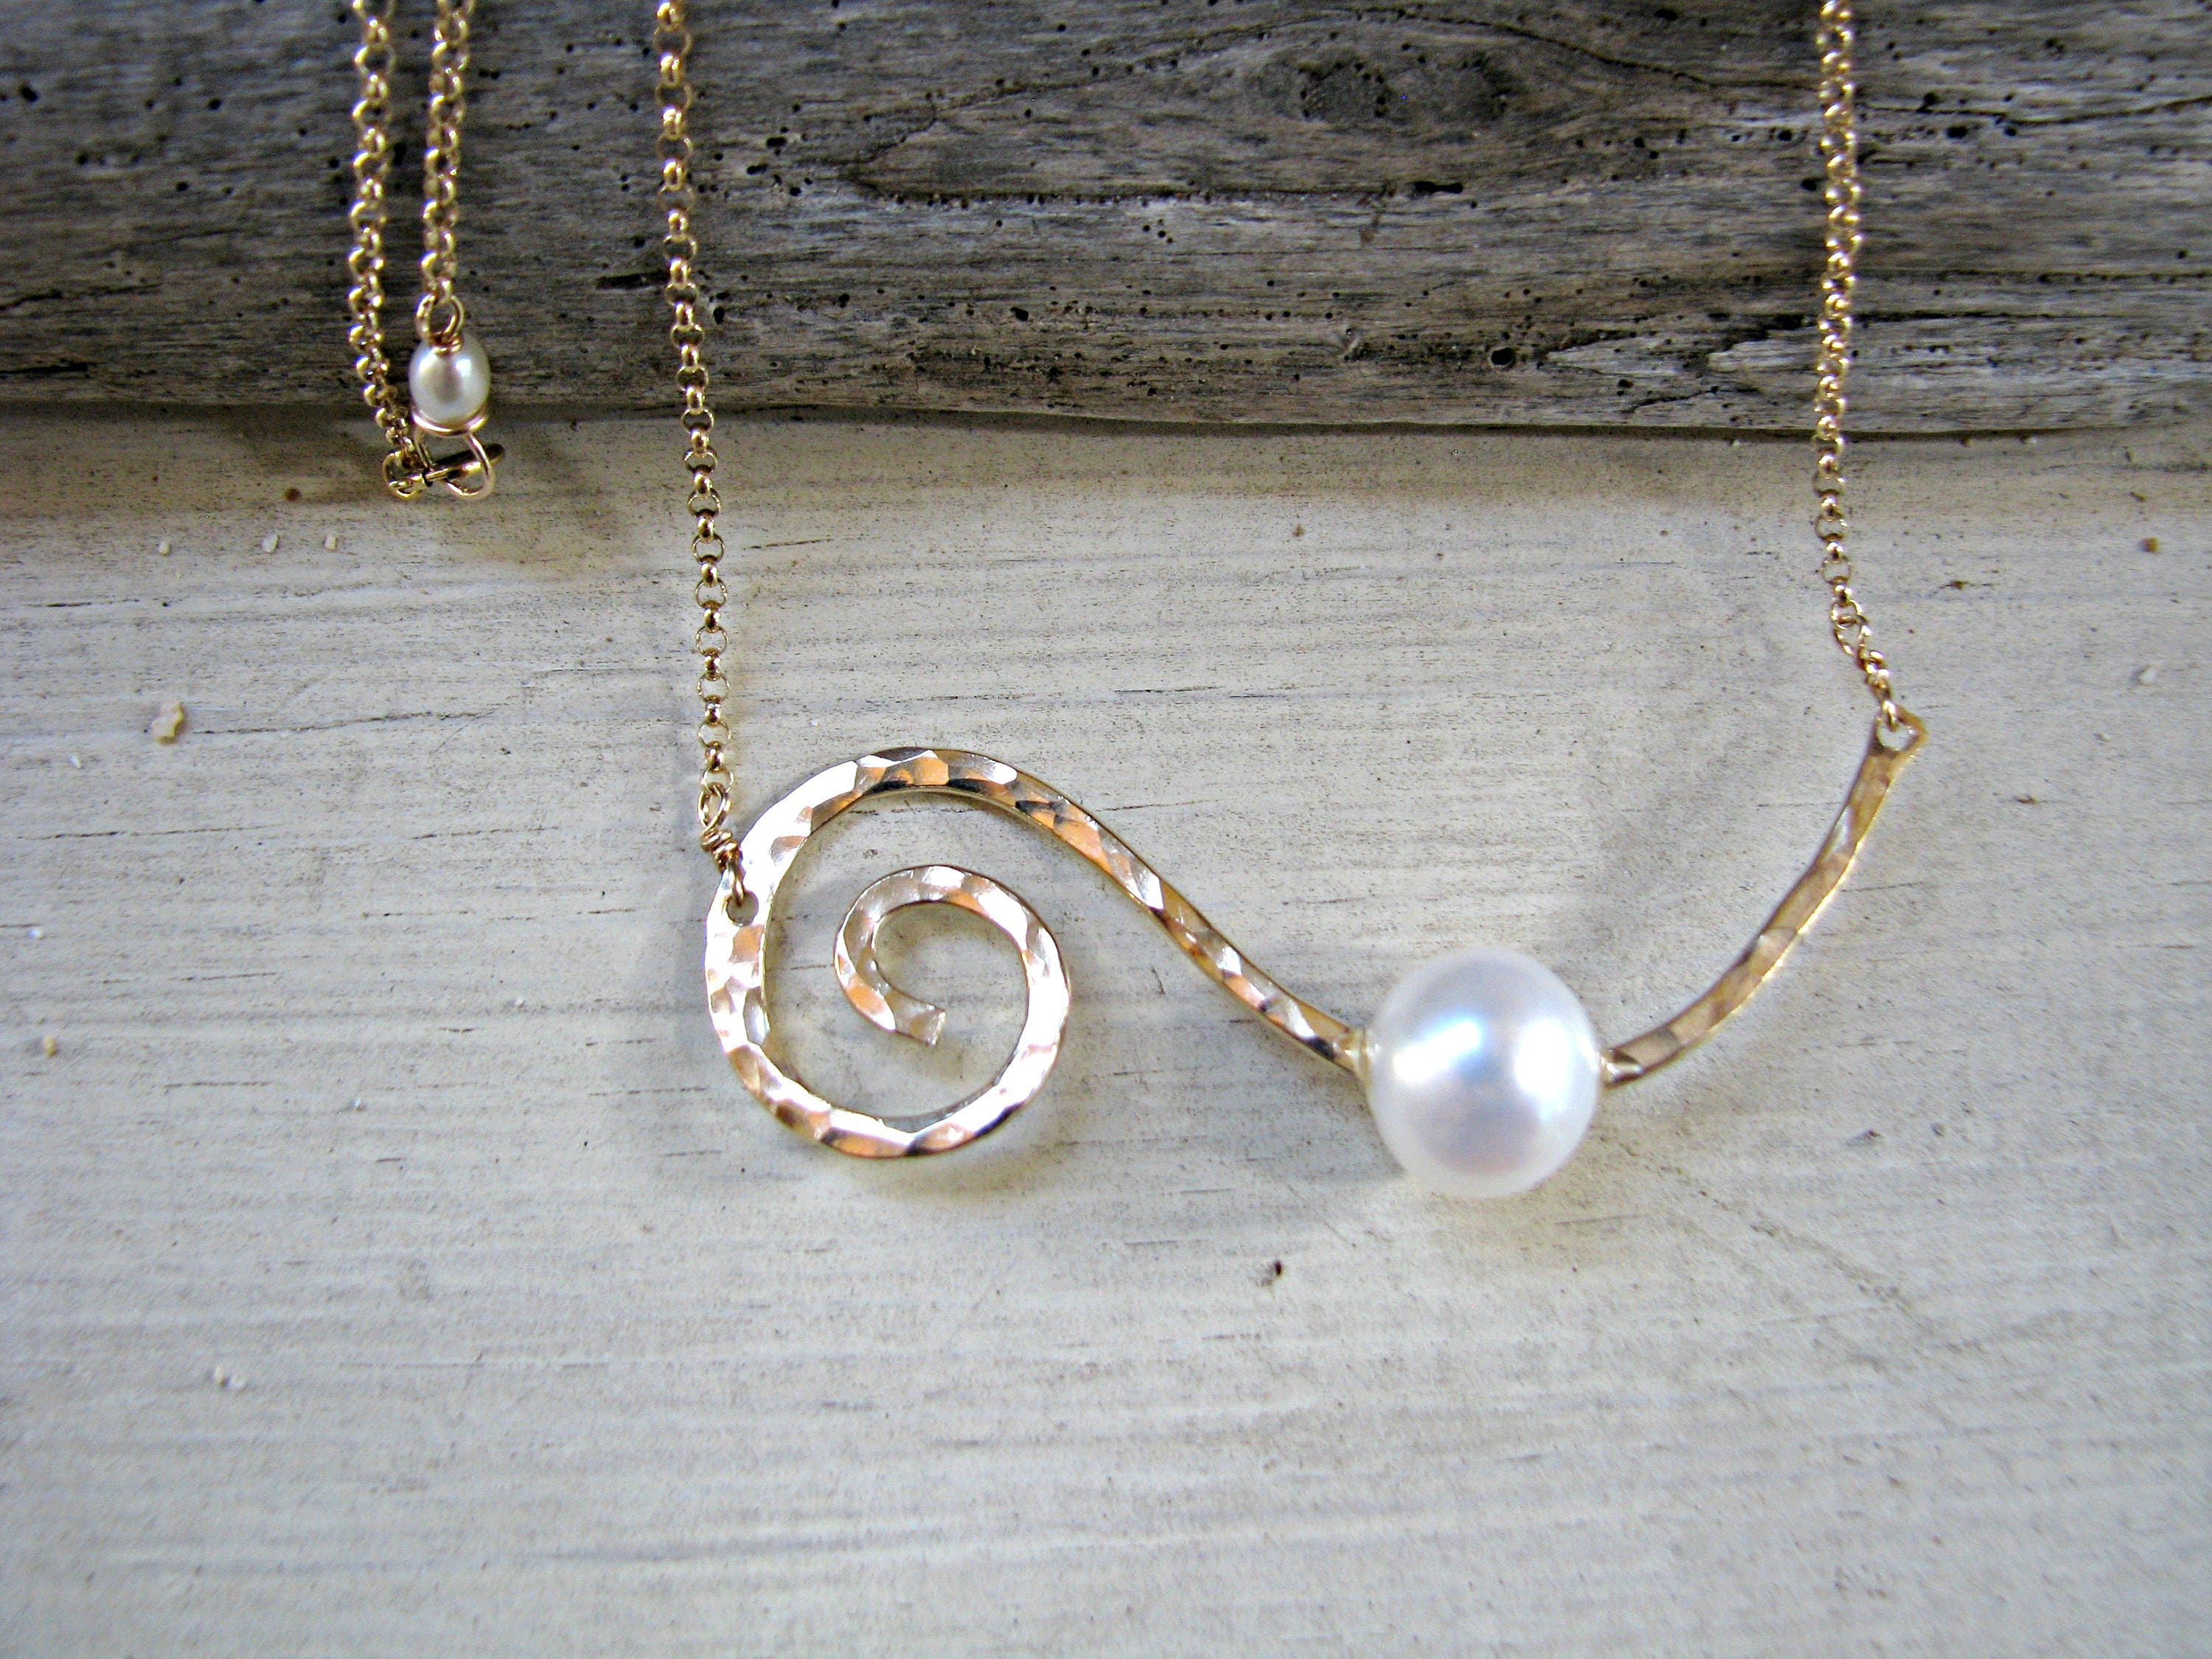 intricate necklace koru reverse with their patterns silver forests light shade cluster new lilygriffin together fronds tiny baby necklaces fern nature dappled botanical petite decorating zealand sterling and in delicate